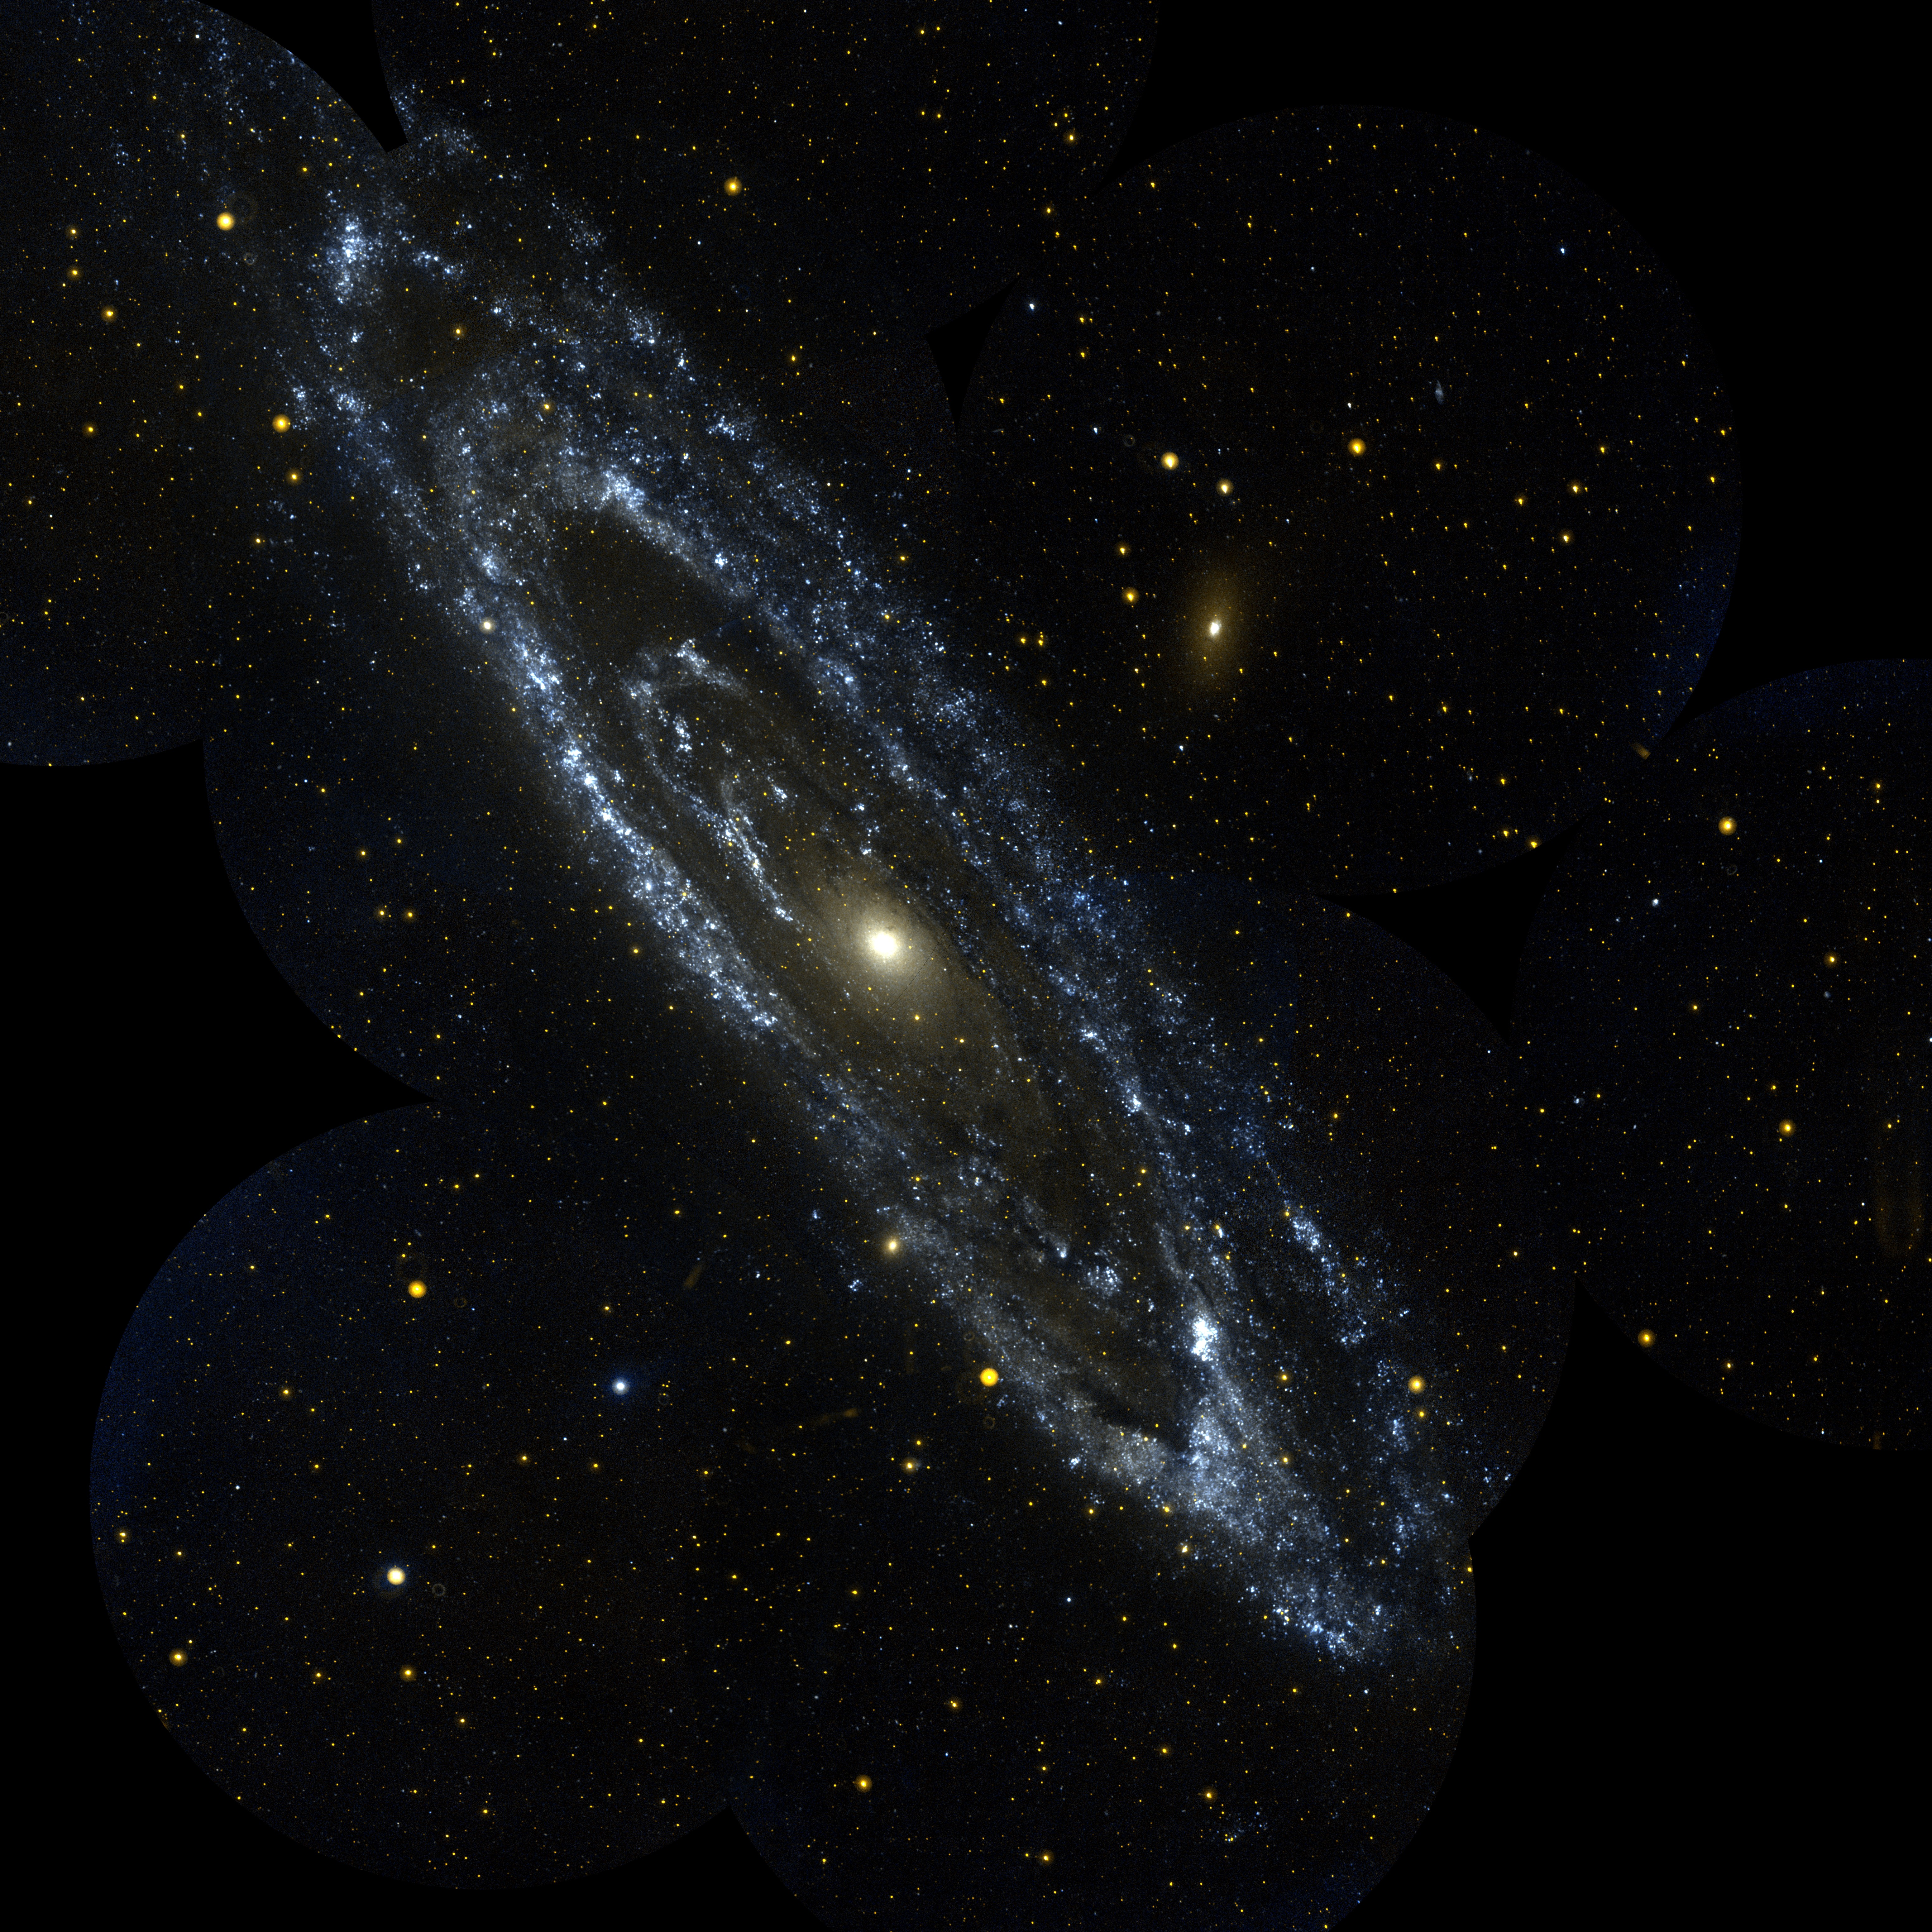 http://upload.wikimedia.org/wikipedia/commons/f/ff/Andromeda_galaxy.jpg